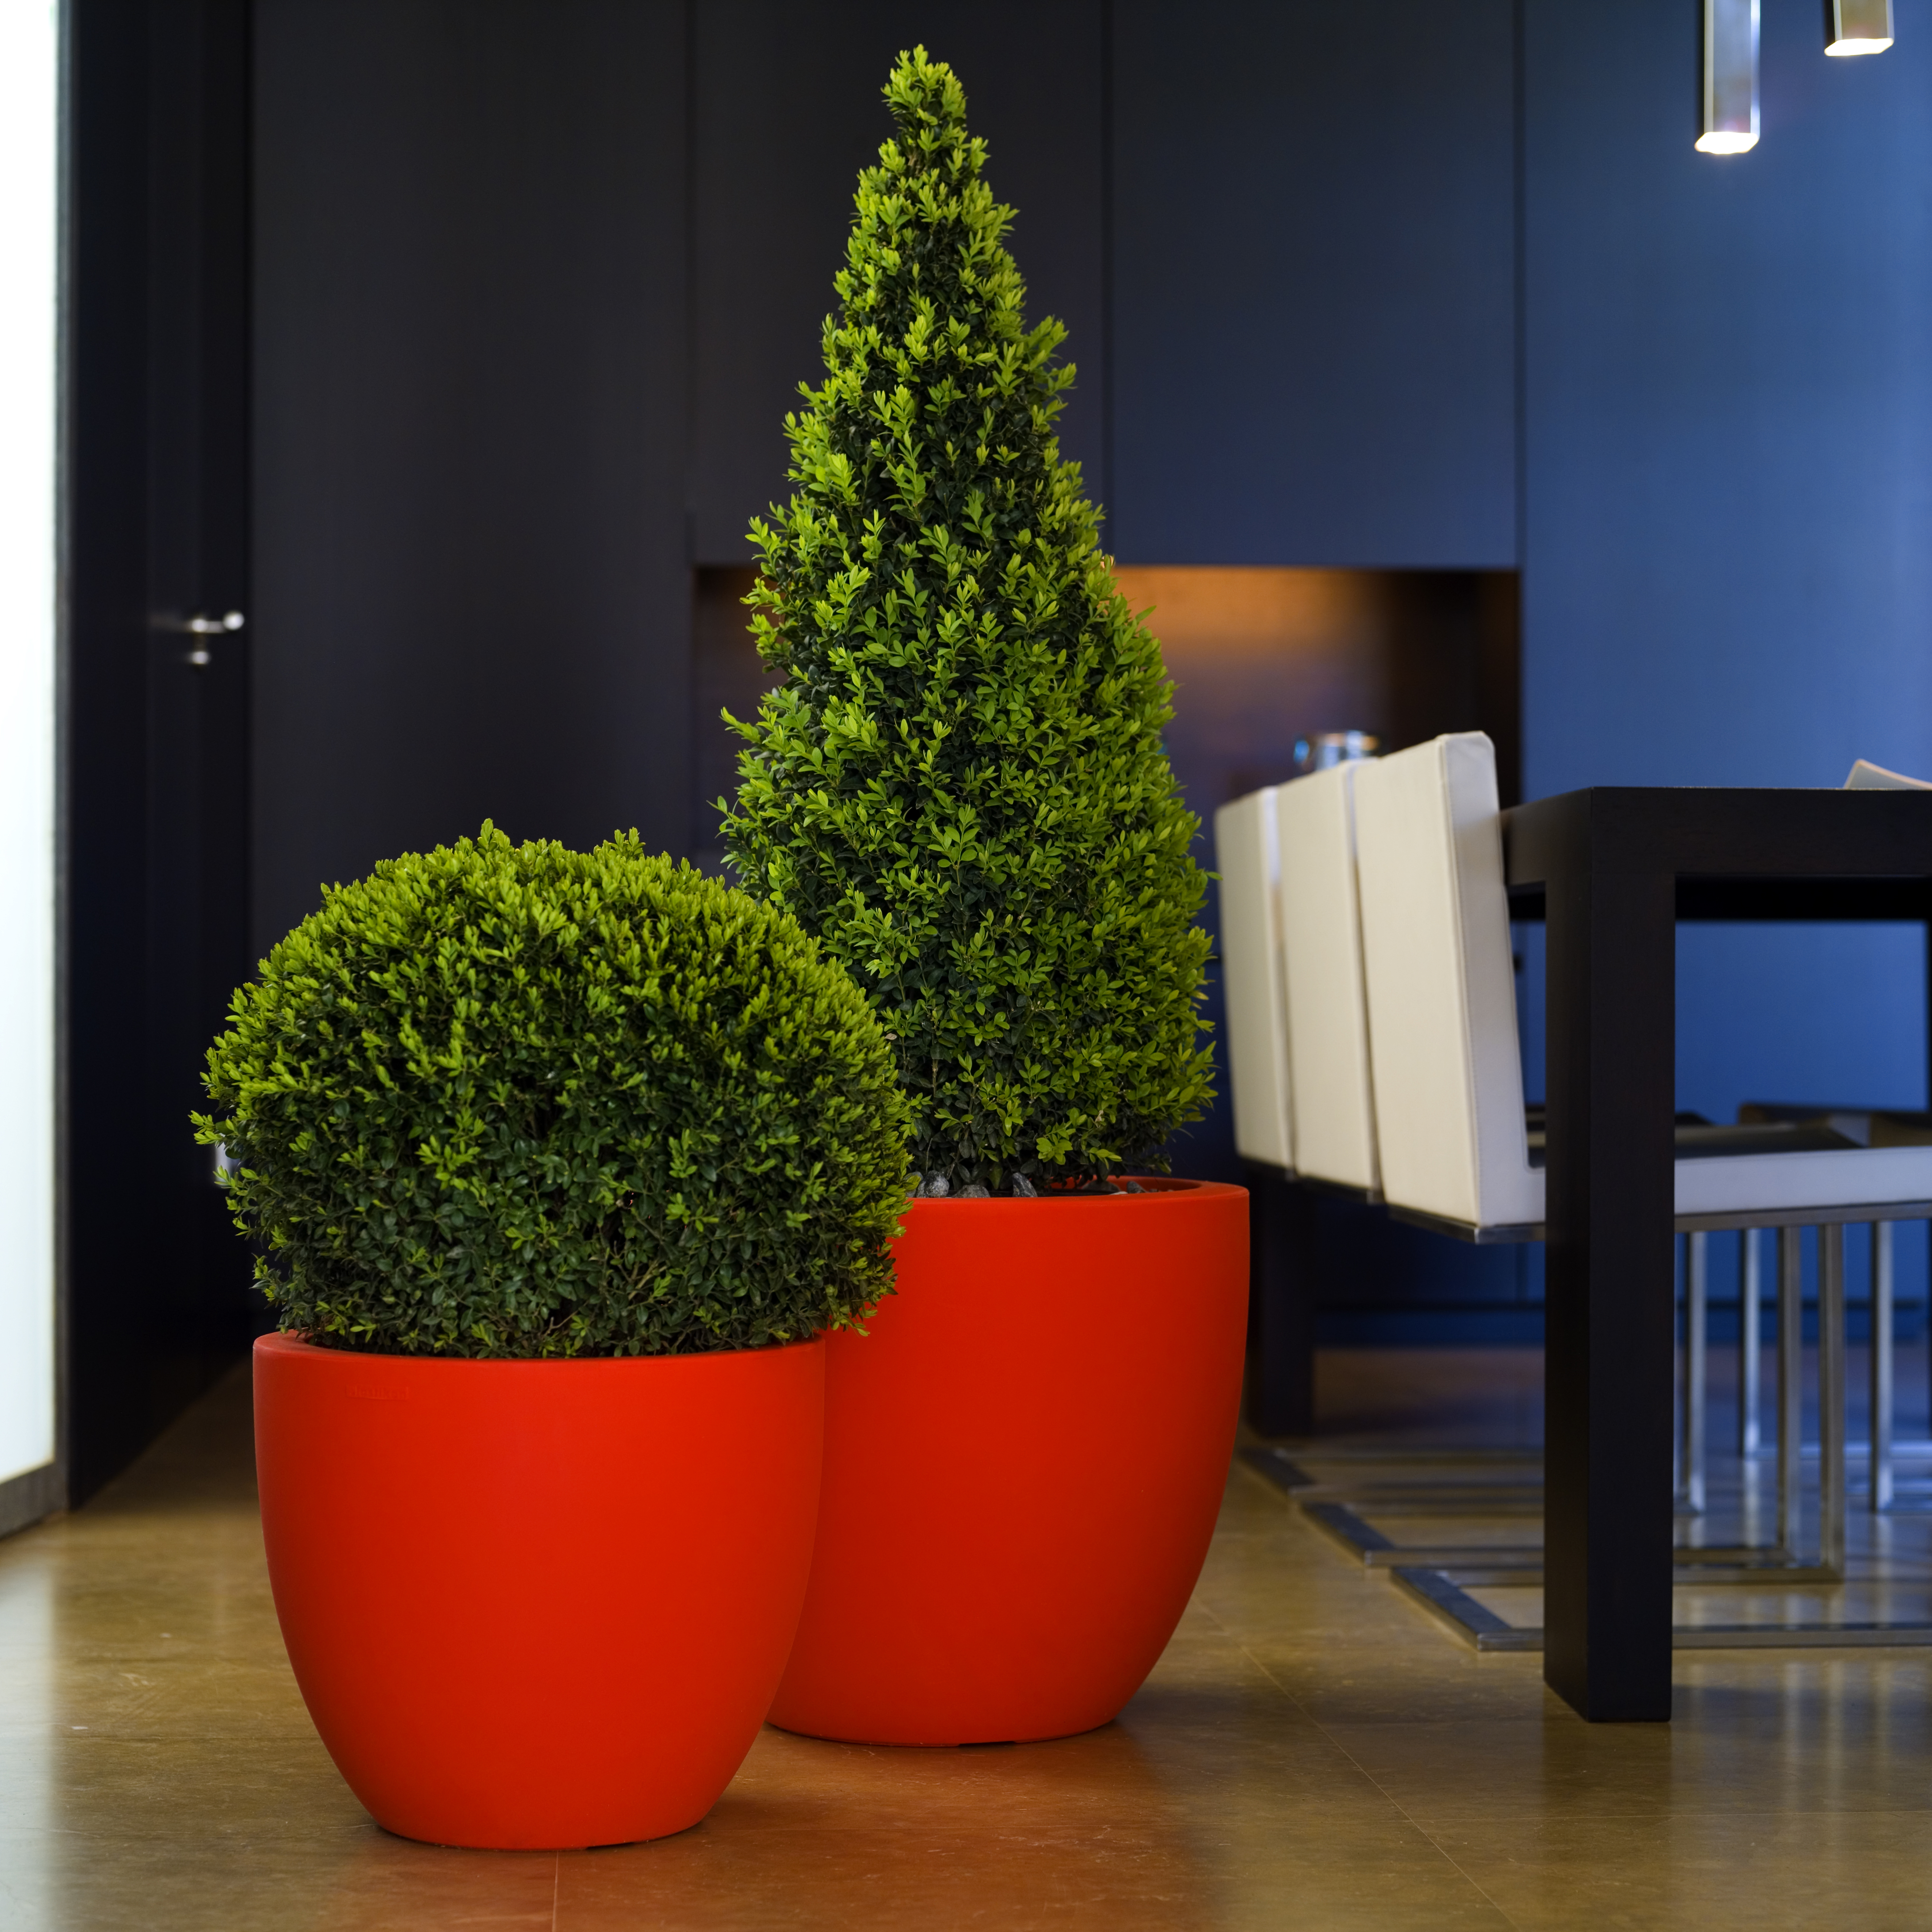 Red Planters